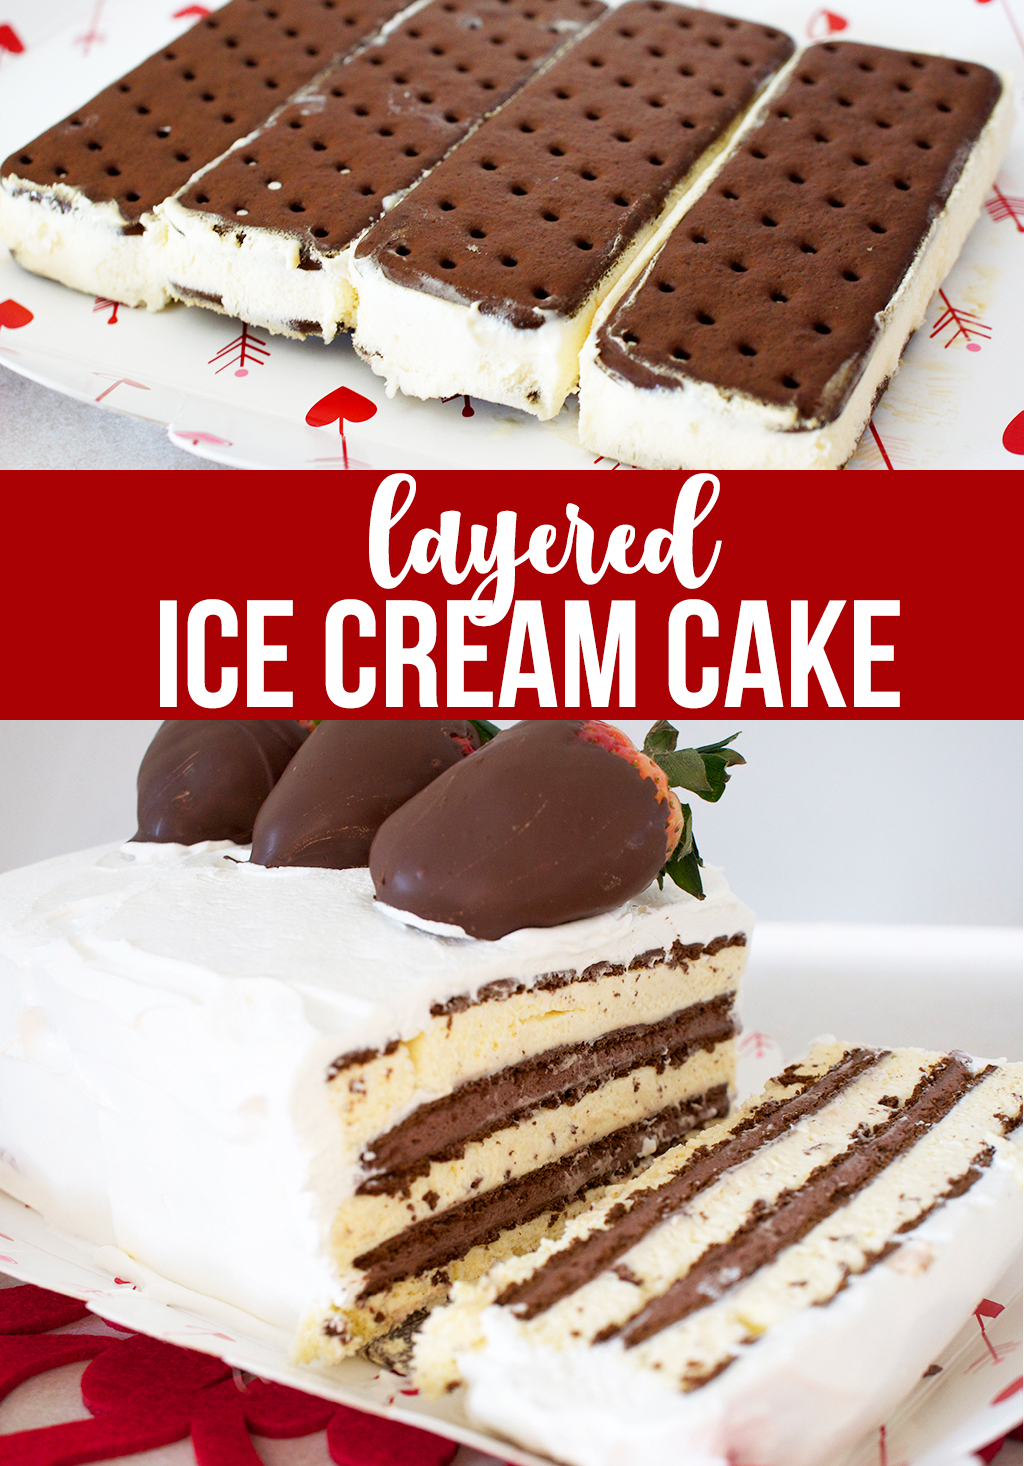 Layered Ice Cream Cake with Ice Cream Sandwiches